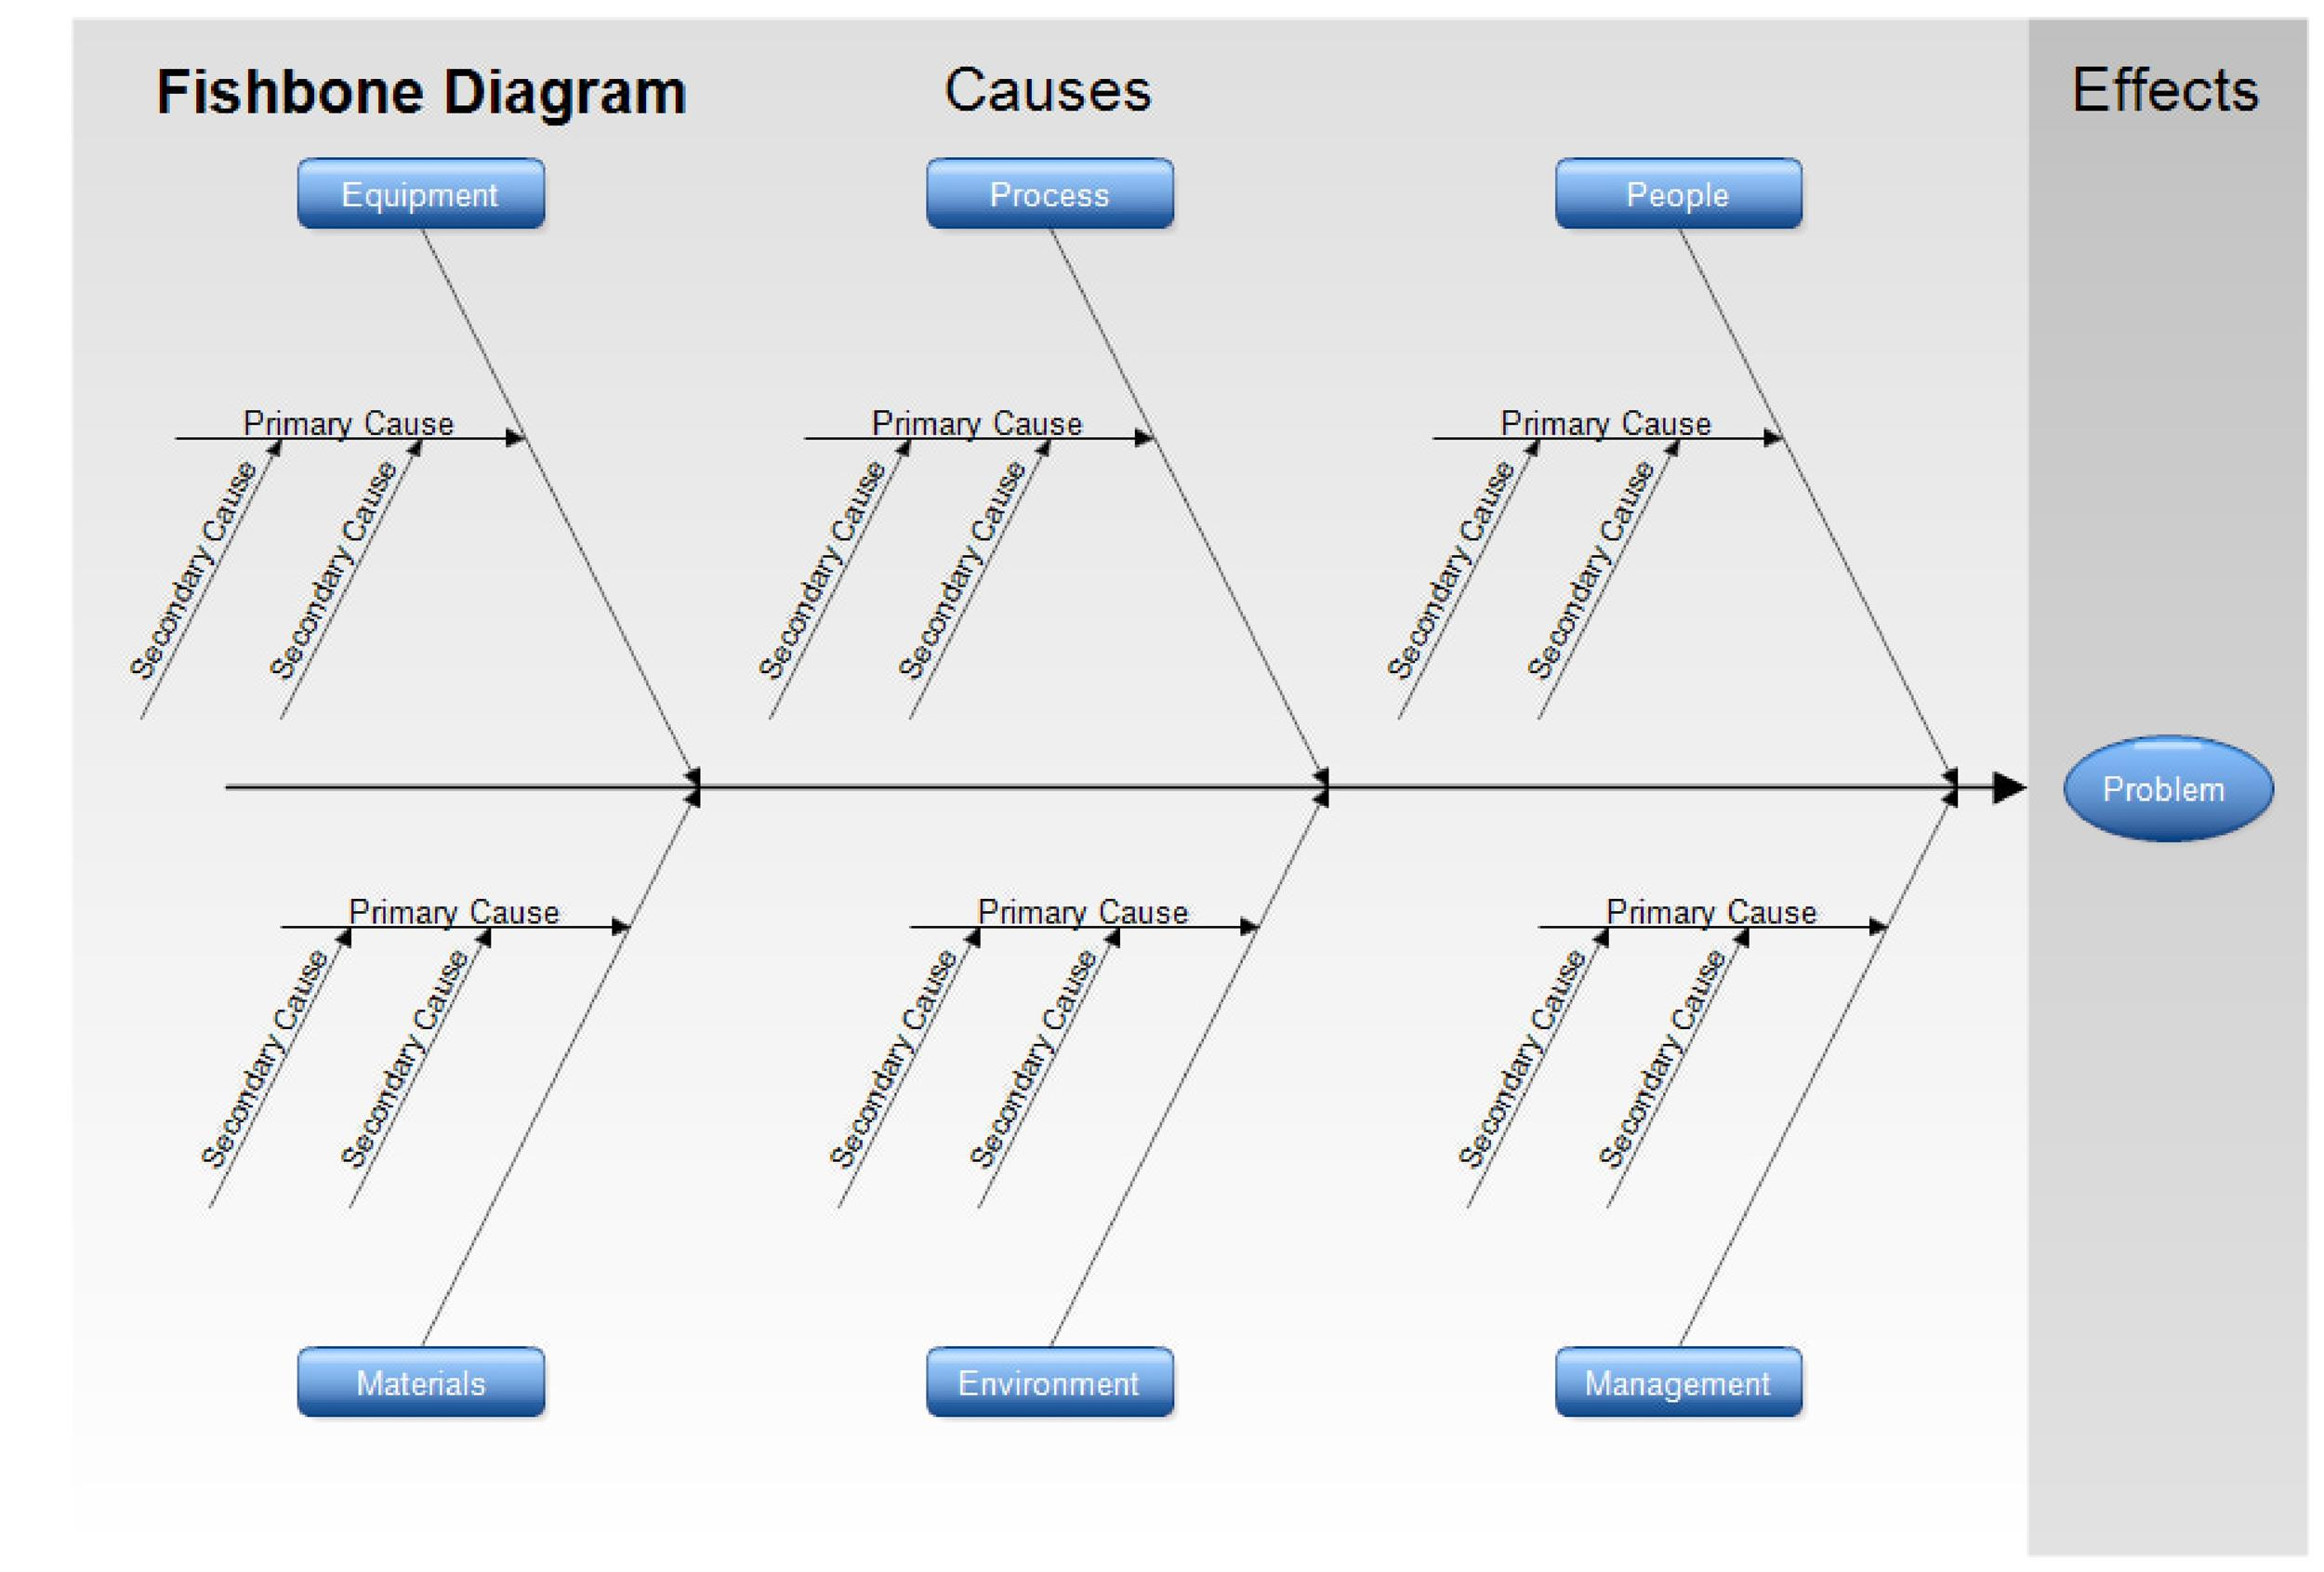 47 Great Fishbone Diagram Templates Amp Examples Word Excel